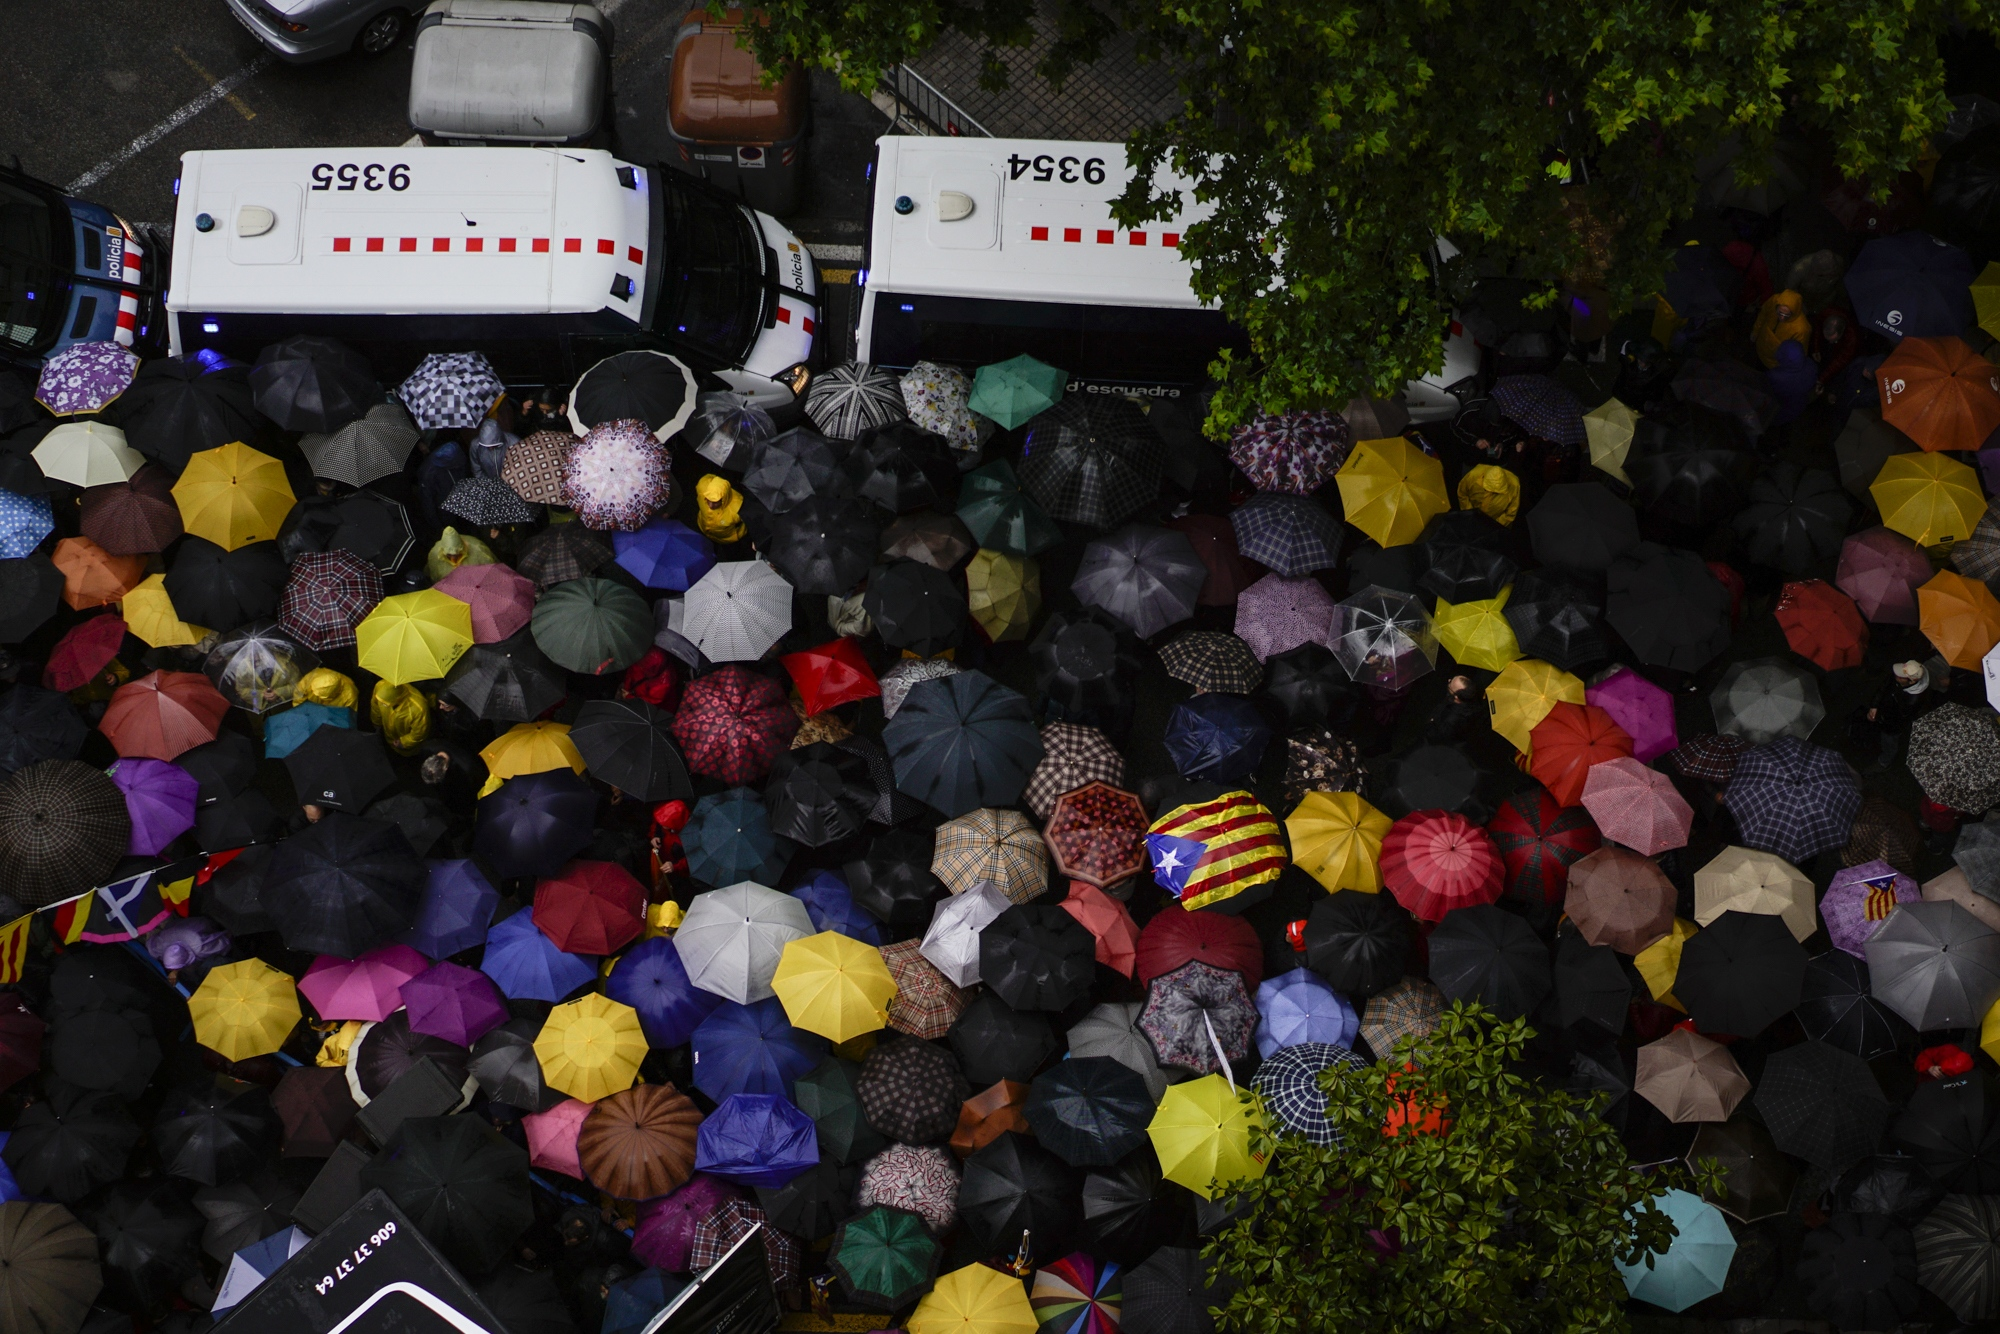 Pro Catalan independence supporters gather in Barcelona to protest the Spanish electoral board's decision to veto exiled Catalan president Puigdemont's candidacy for the upcoming European elections. May 3, 2019.